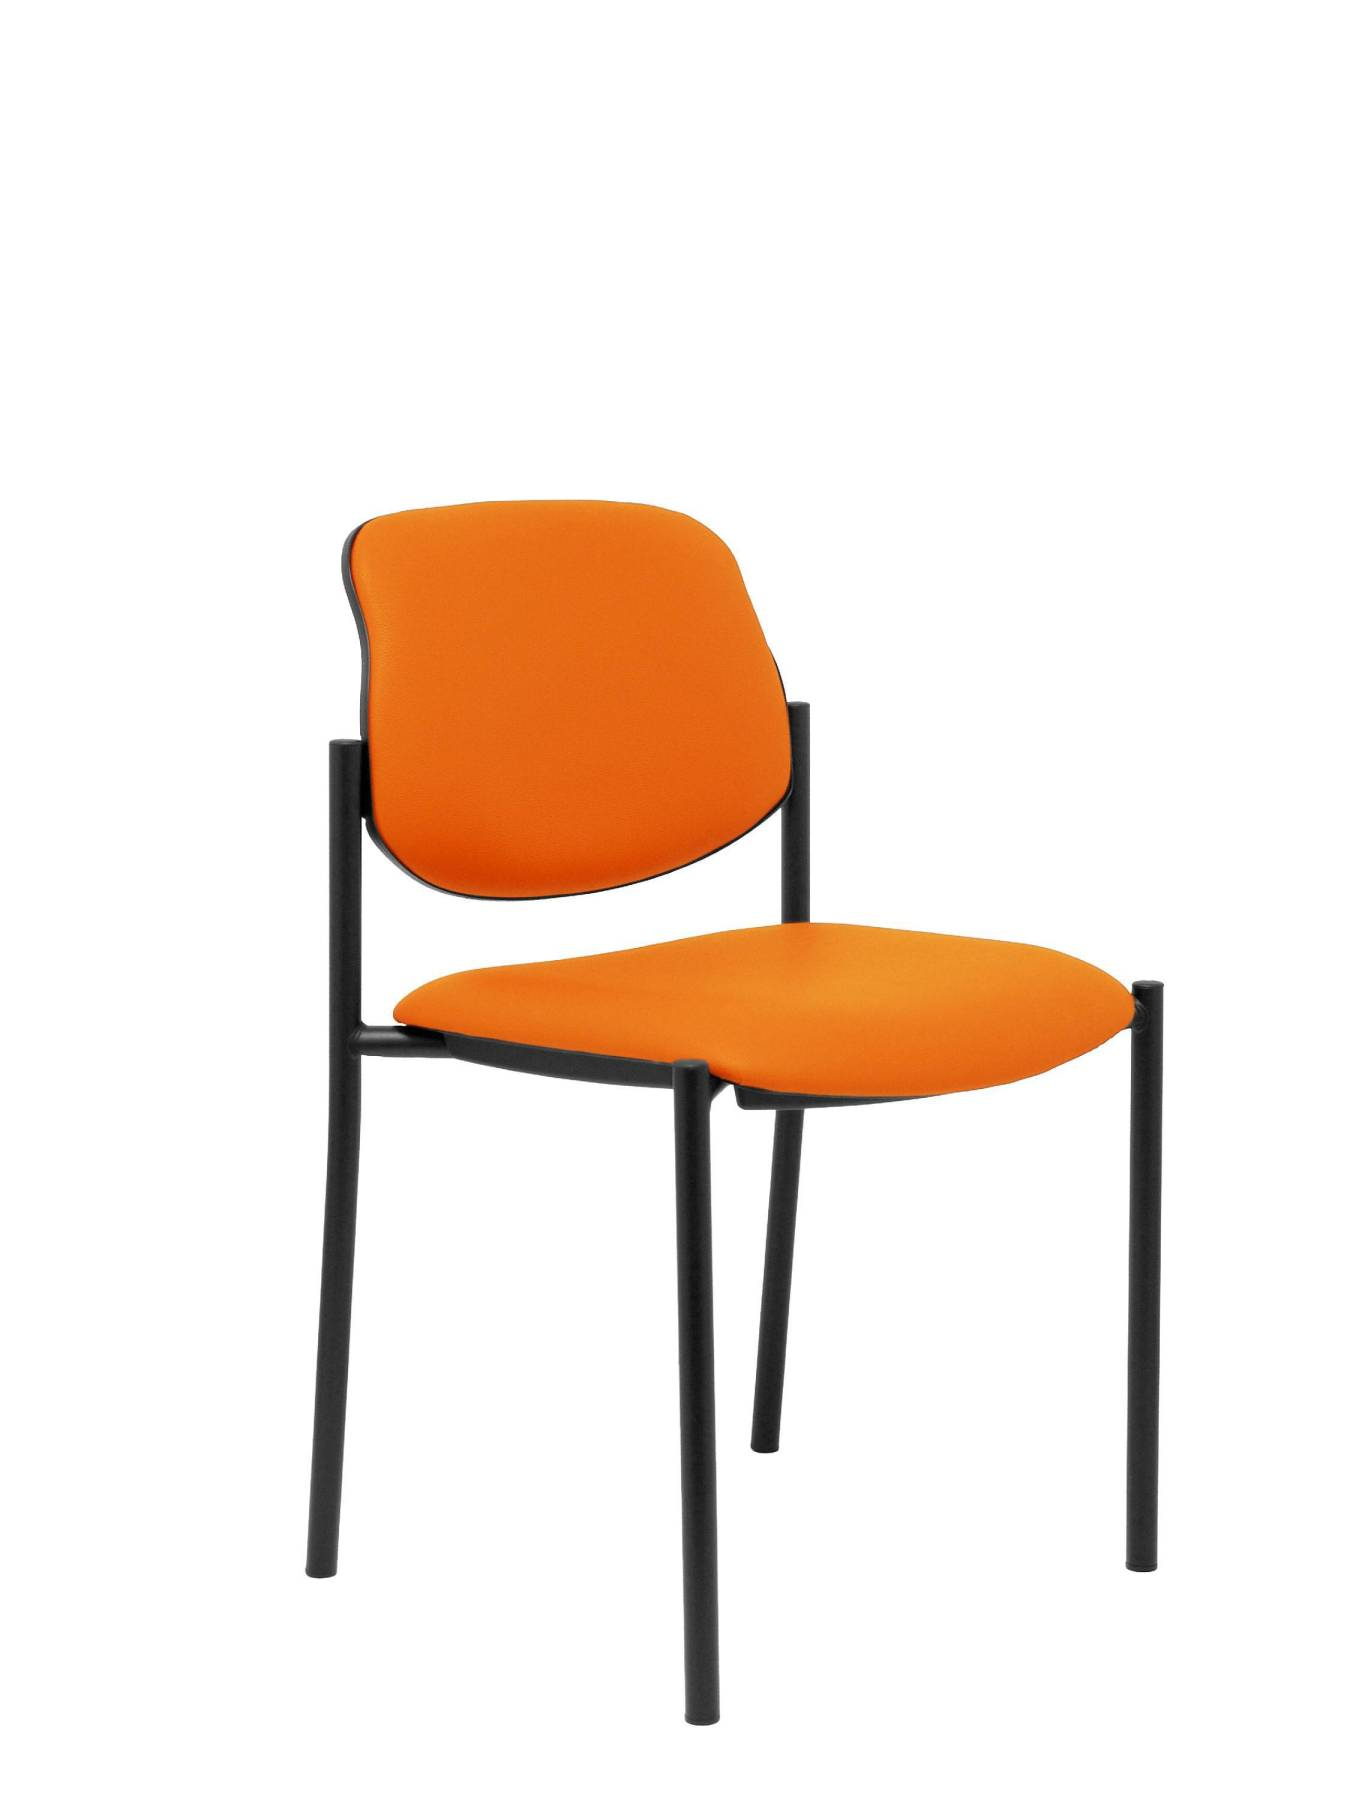 Visitor Chair 4's Topsy And Estructrua Negro-up Seat And Backstop Upholstered In Tissue Similpiel Orange TAPHOLE